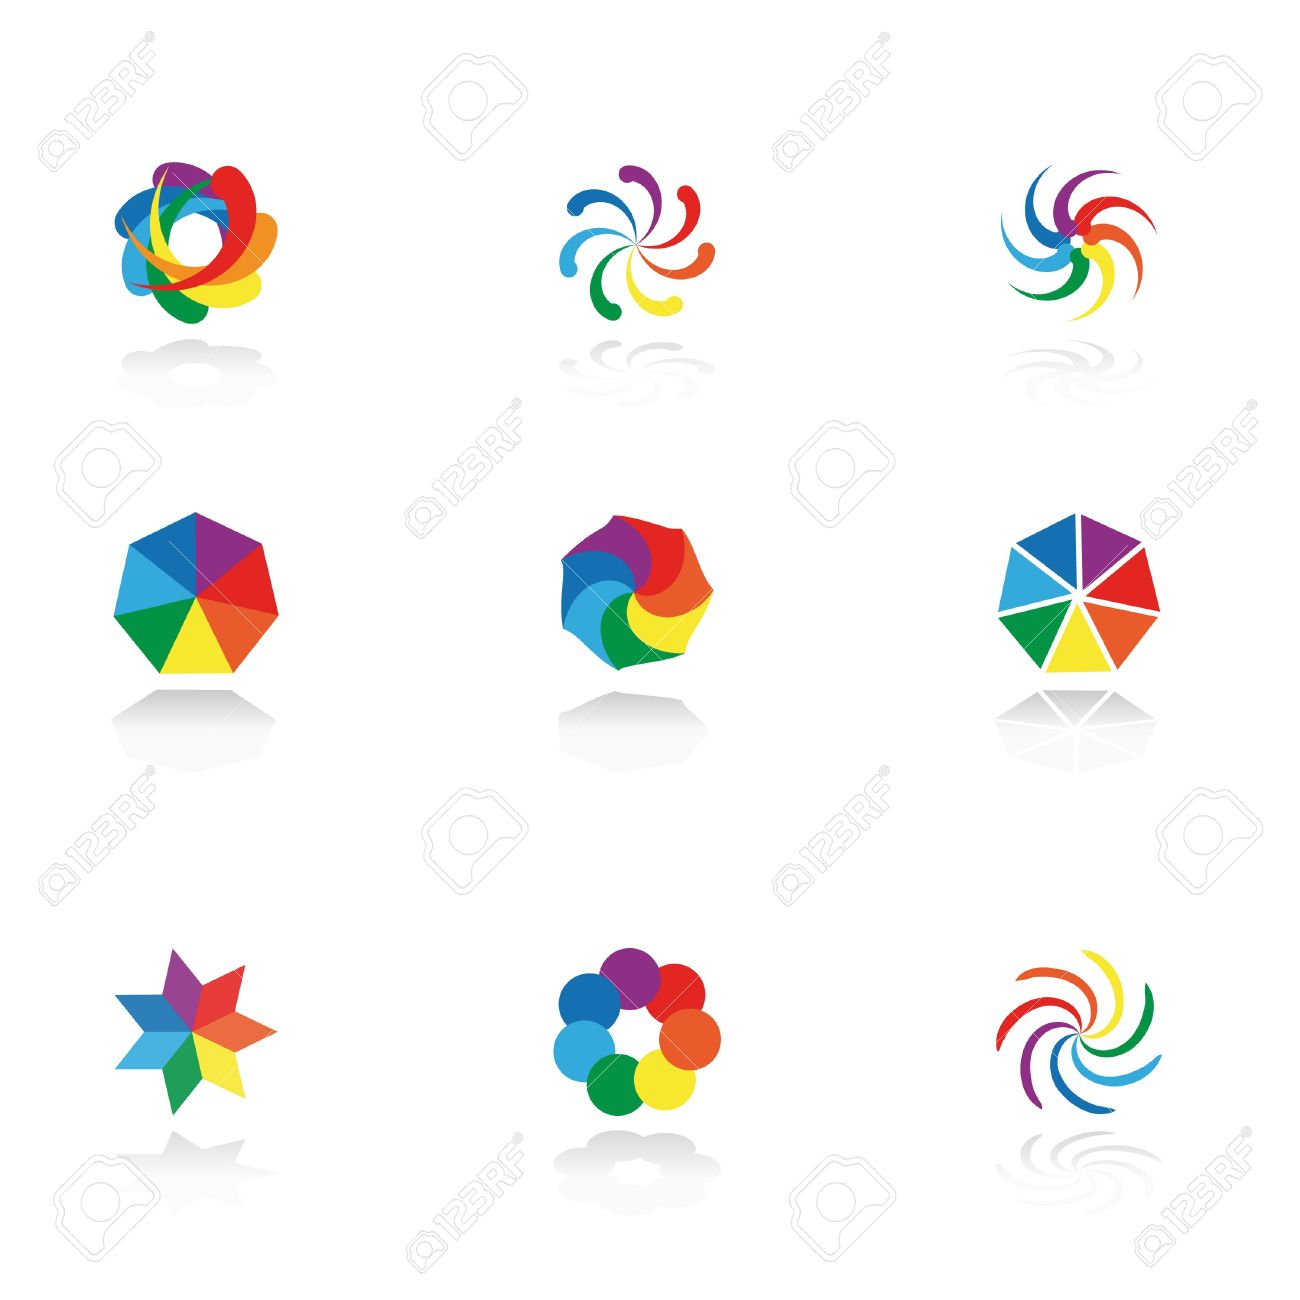 Collection of 9 design elements and graphics.   CMYK. Stock Vector - 8010600